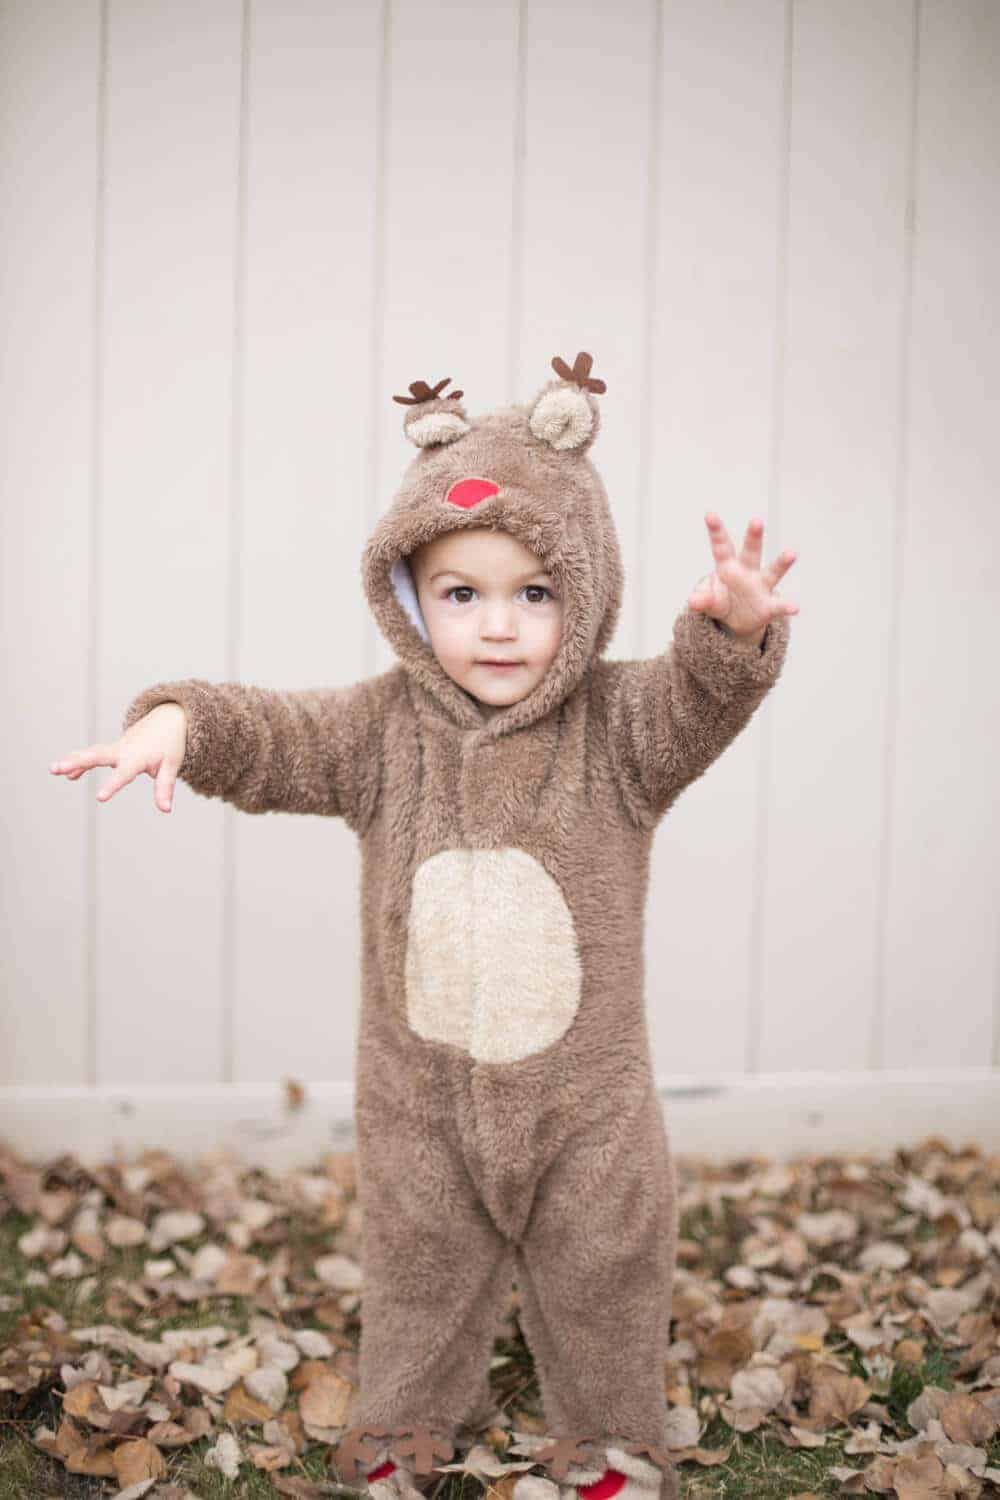 family halloween costume ideas- reindeer